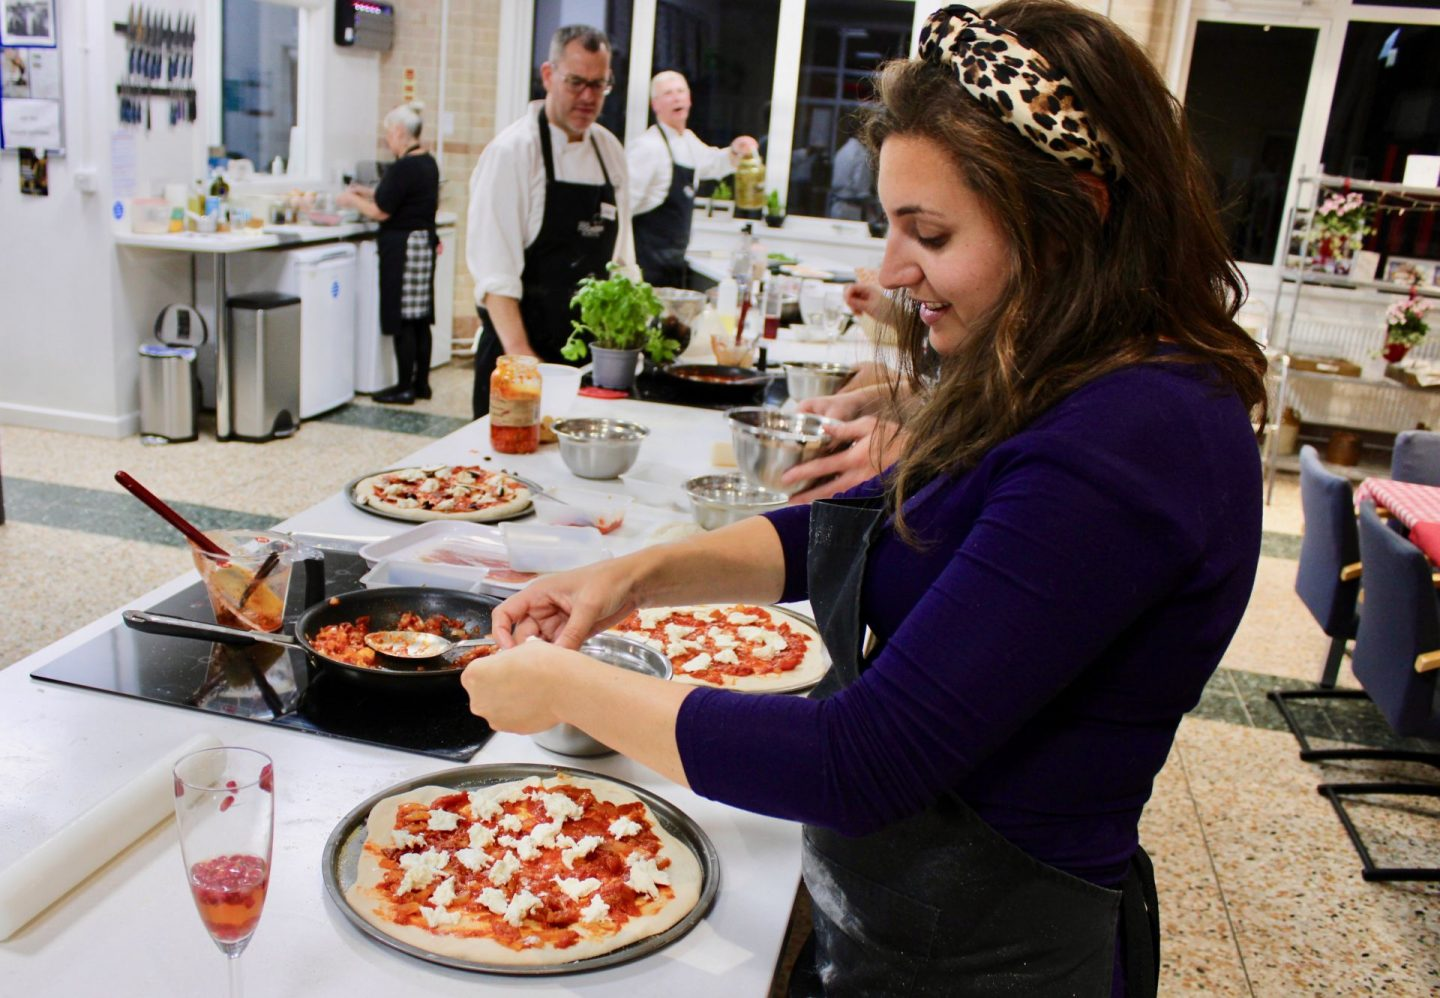 things to do in leeds city centre - nell concentrating on make a pizza at Leeds cookery school